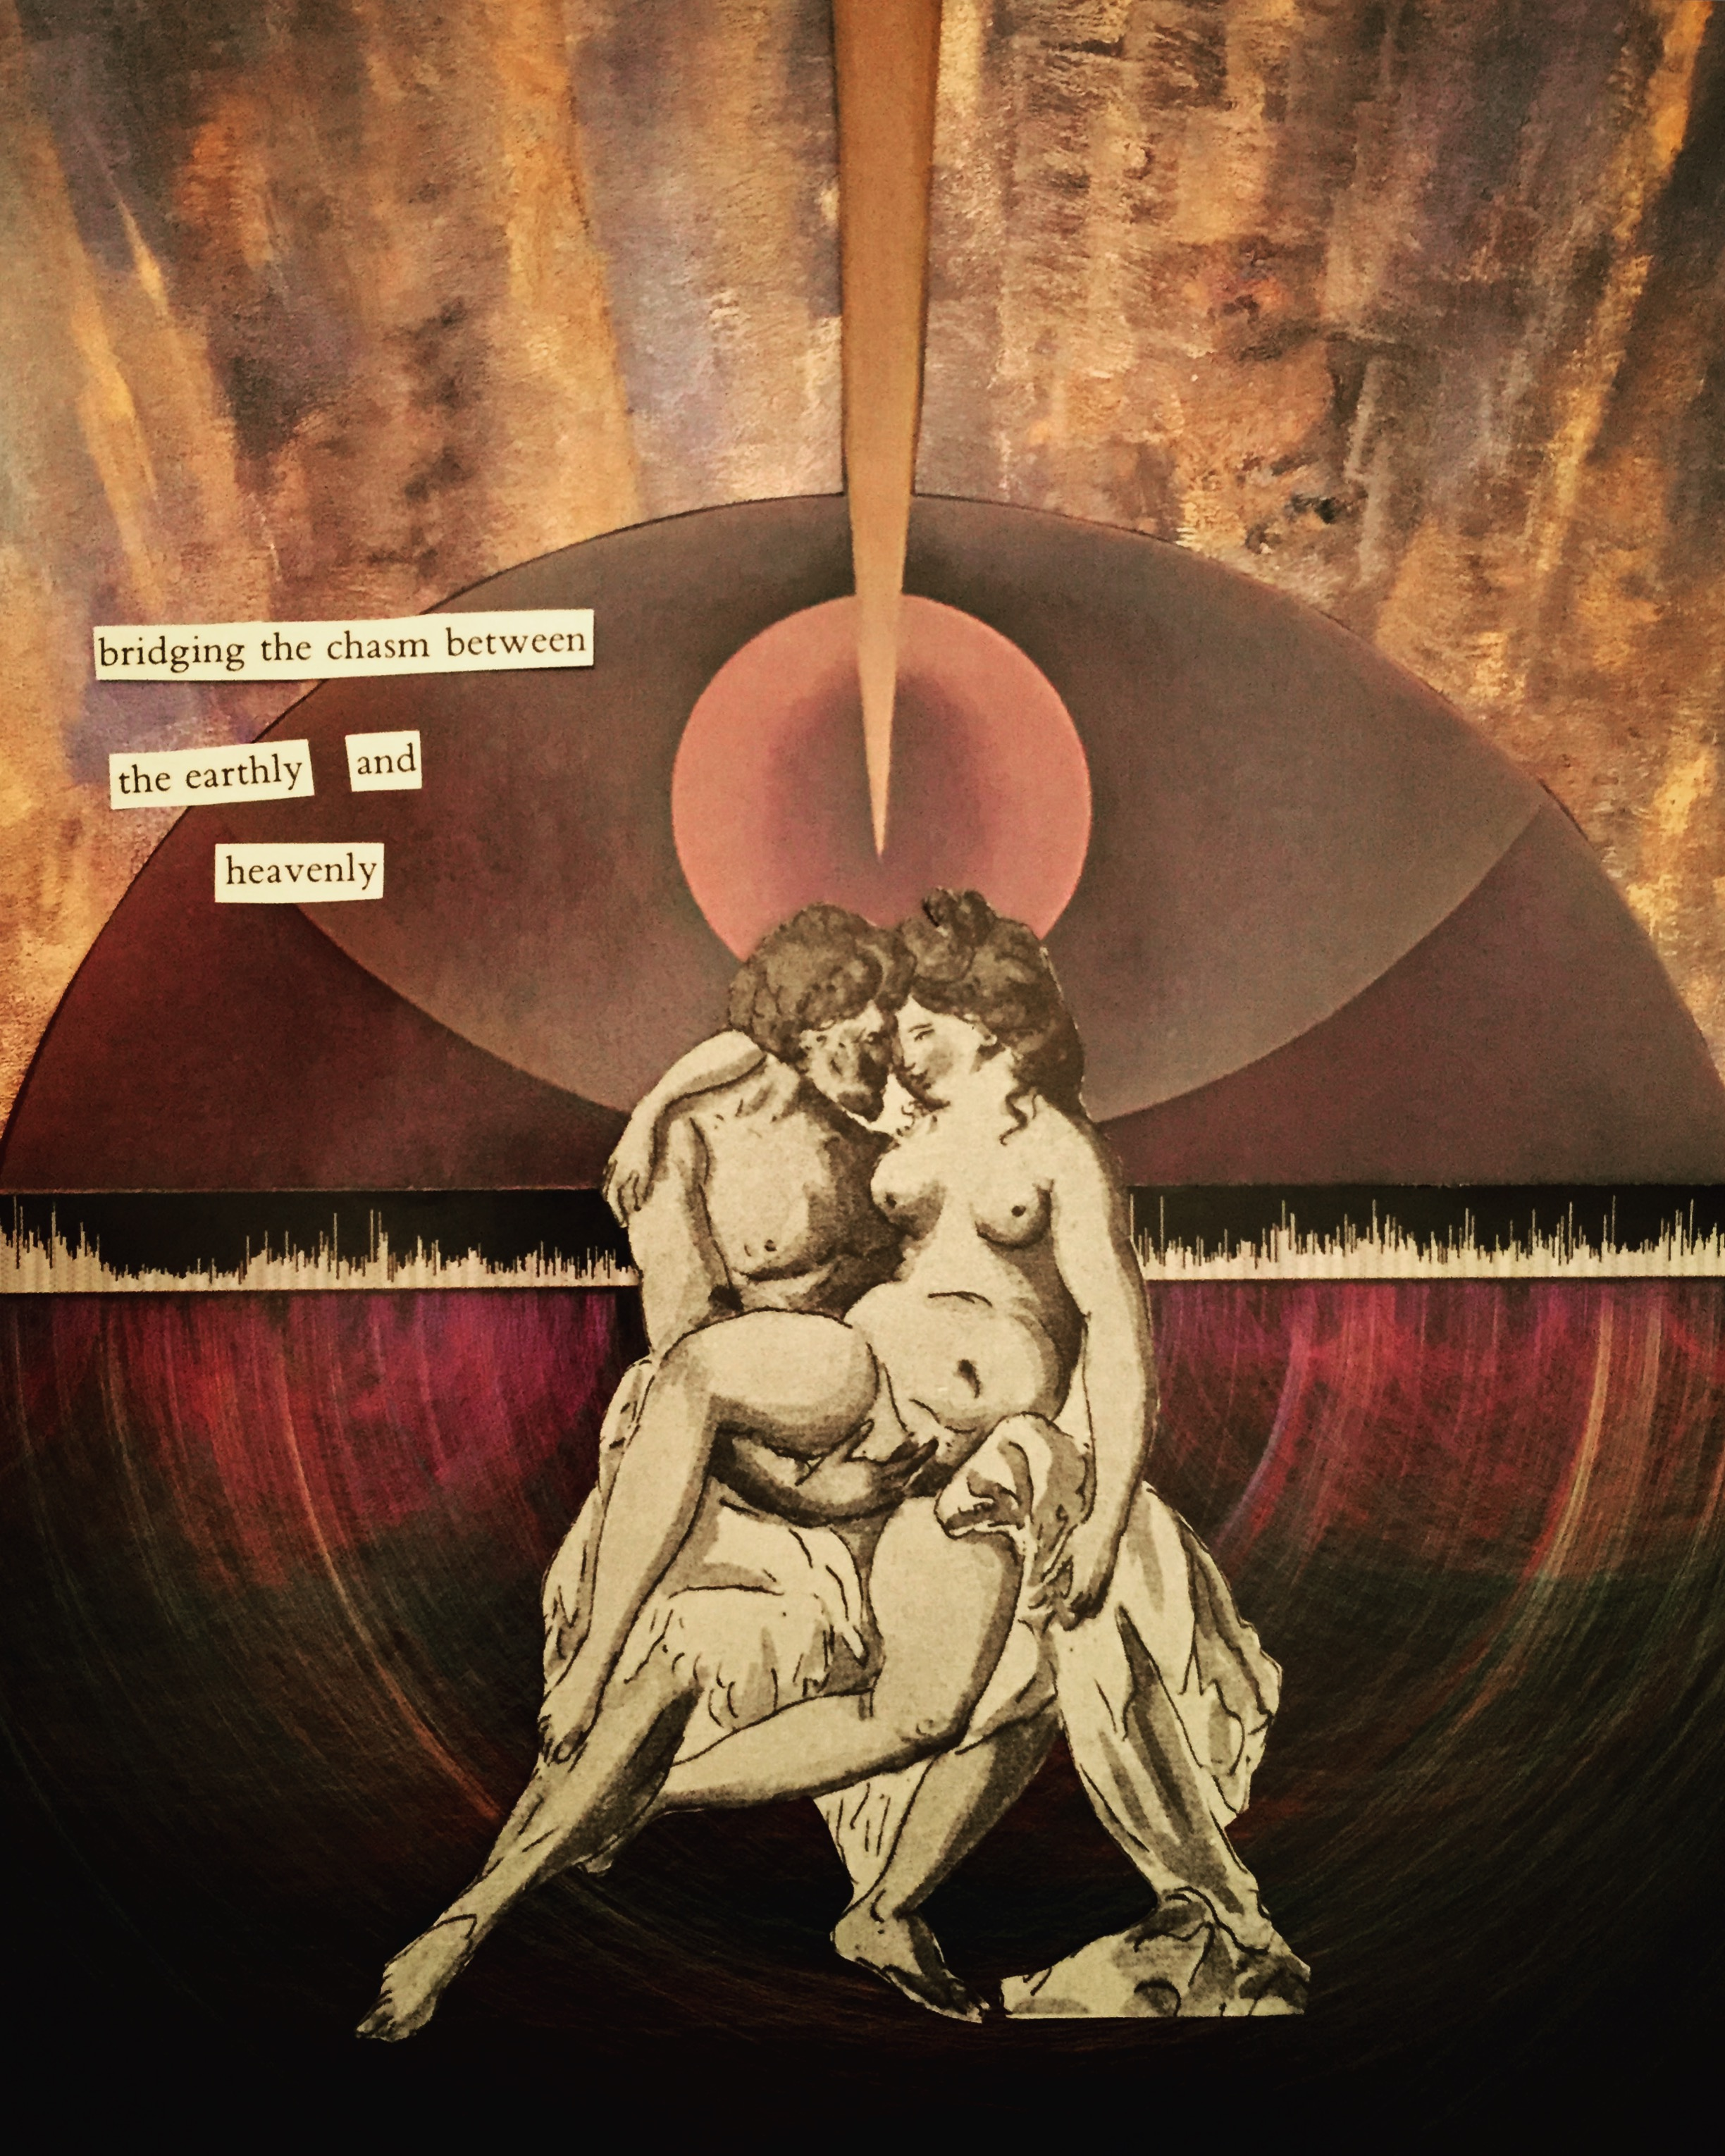 Bridging the Chasm Between the Earthly and Heavenly by Joan Pope (sexdeathrebirth)